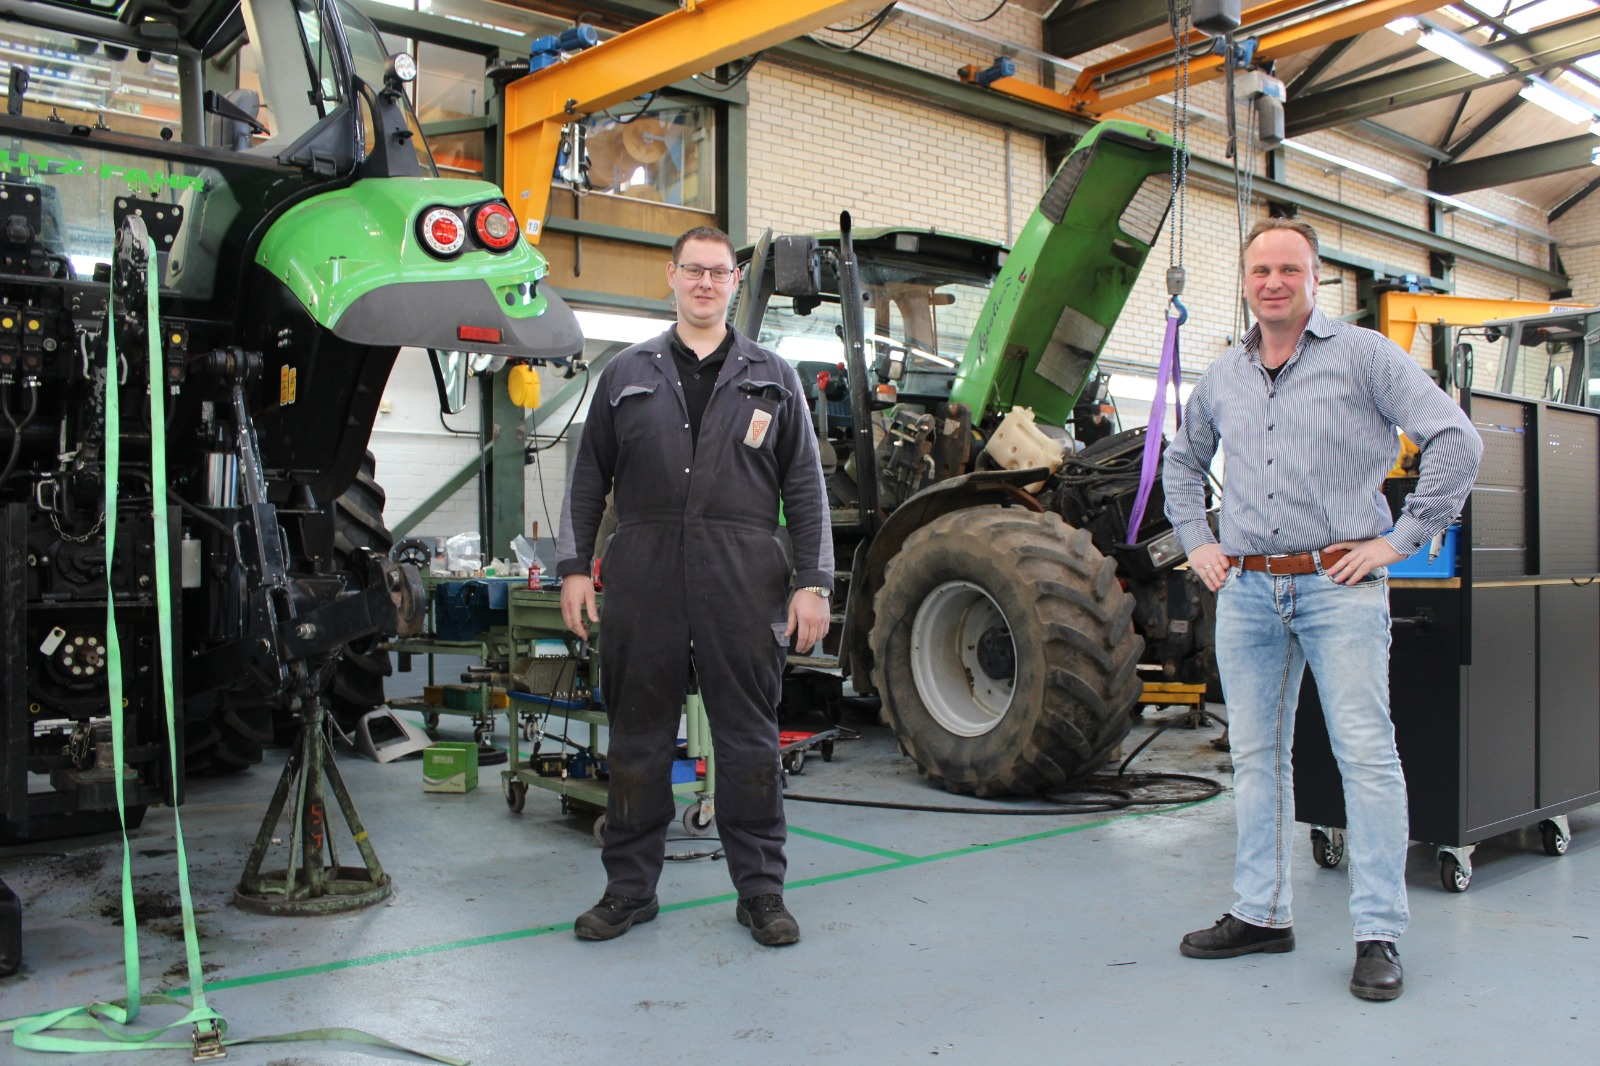 Van der Sluis Agri is happy with a more spacious workspace in Kamperzeedijk – Genemuiden Actueel